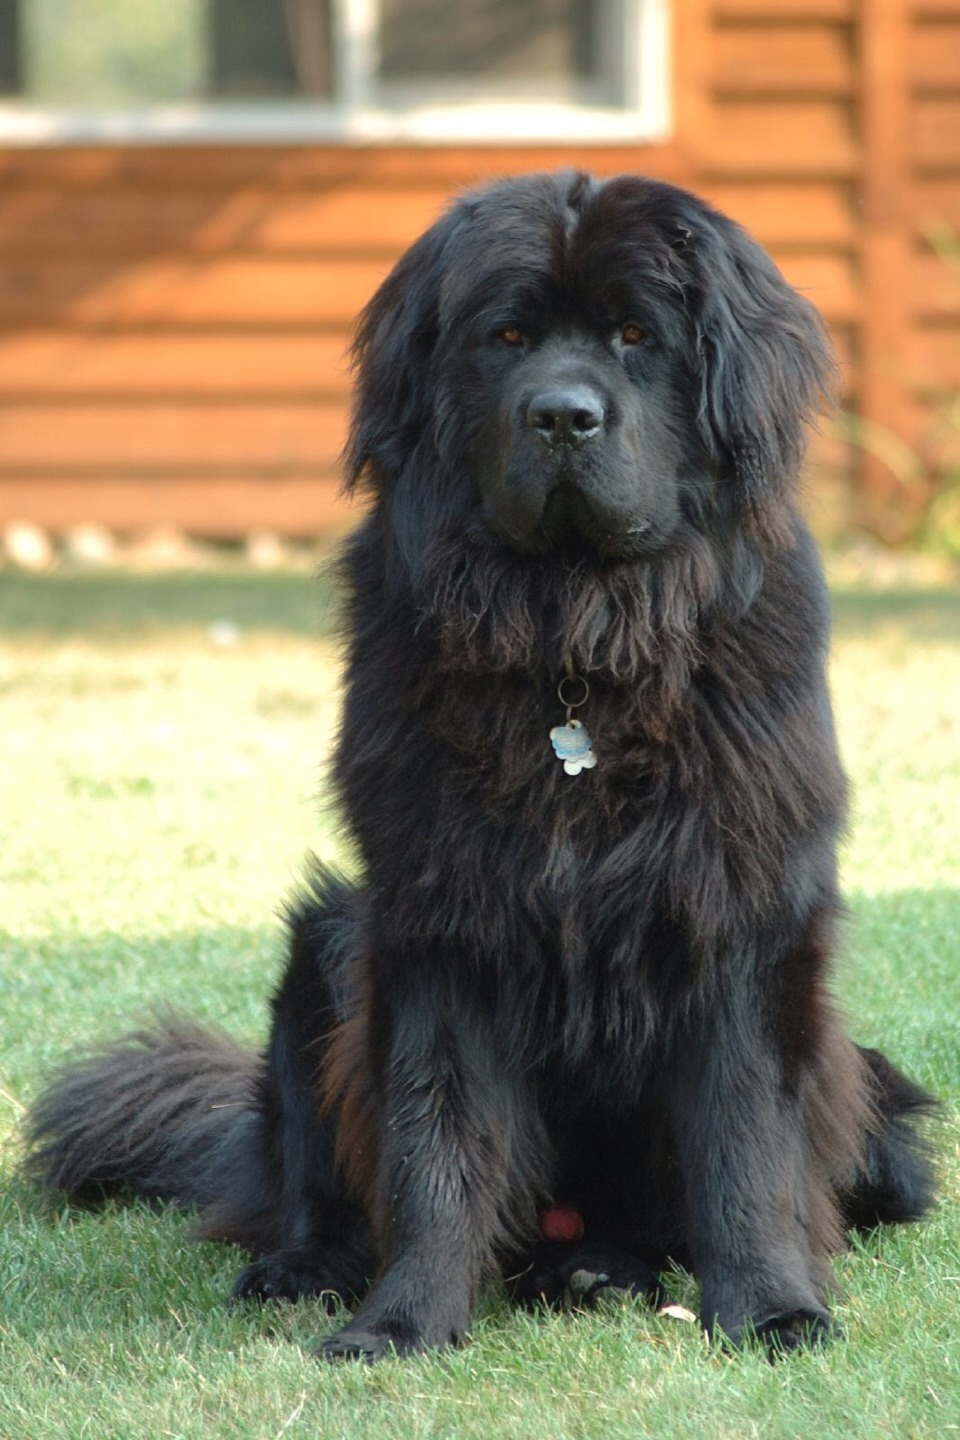 """The Newfoundland: Also know as """"natures baby sitters"""". These dogs will look after children as their own. But there long thick coat make grooming a must. They are protective of family and are gentle giants."""